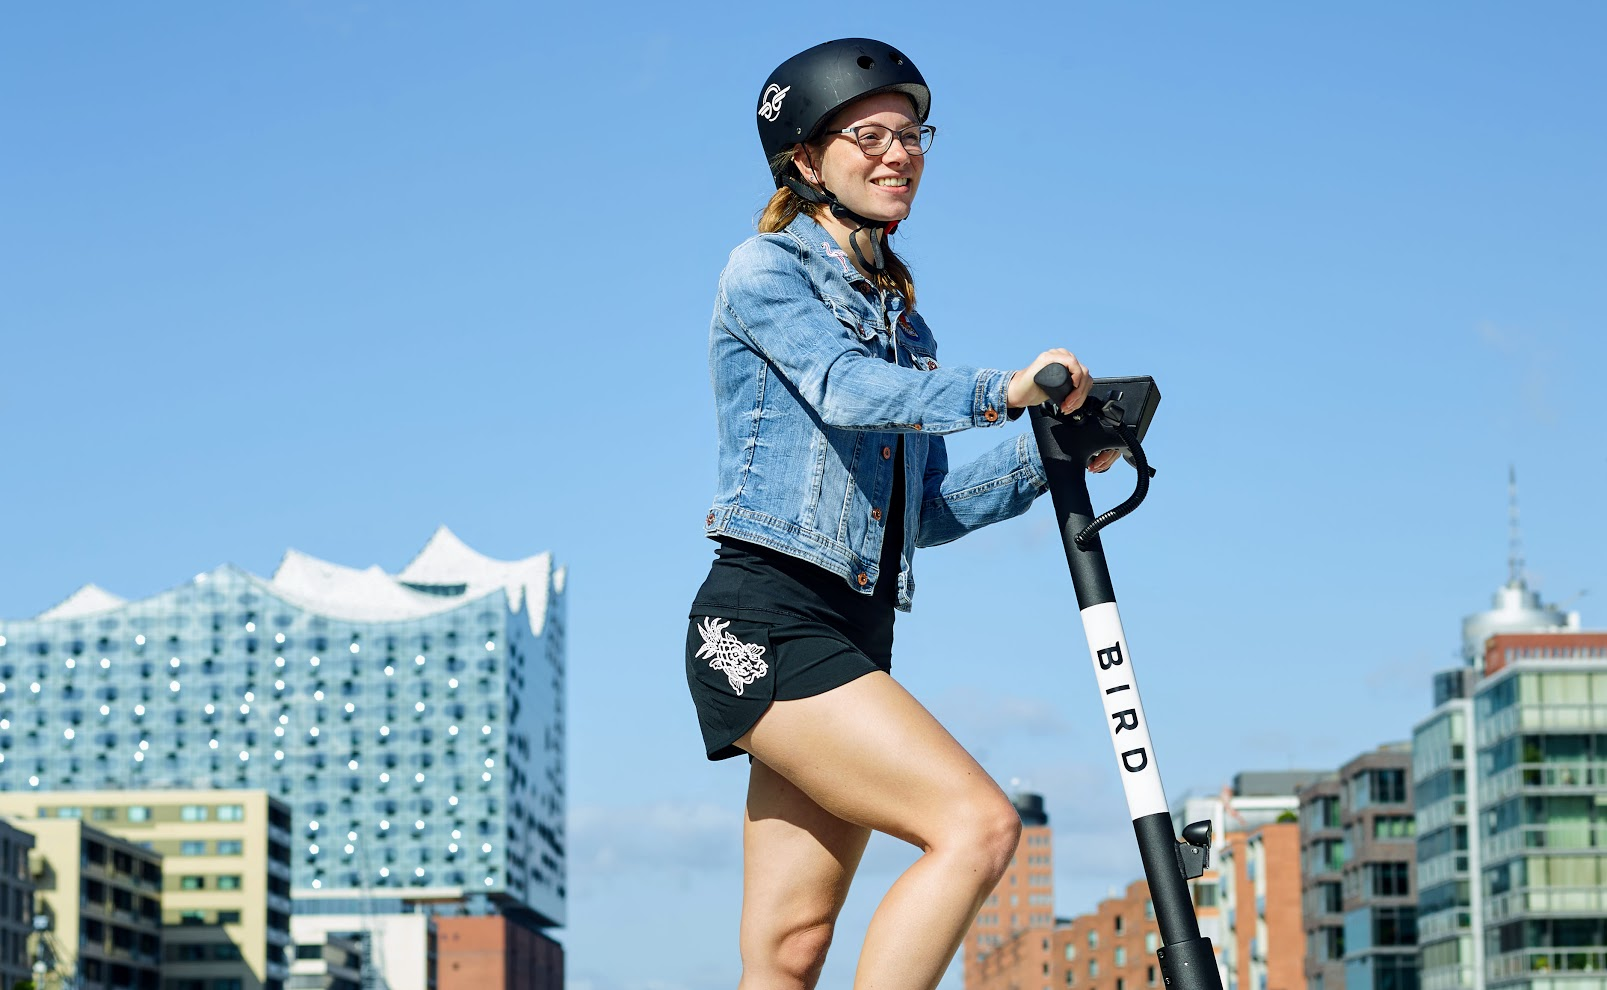 Girl wearing Bird helmet stands atop Bird One electric scooter with city buildings in background